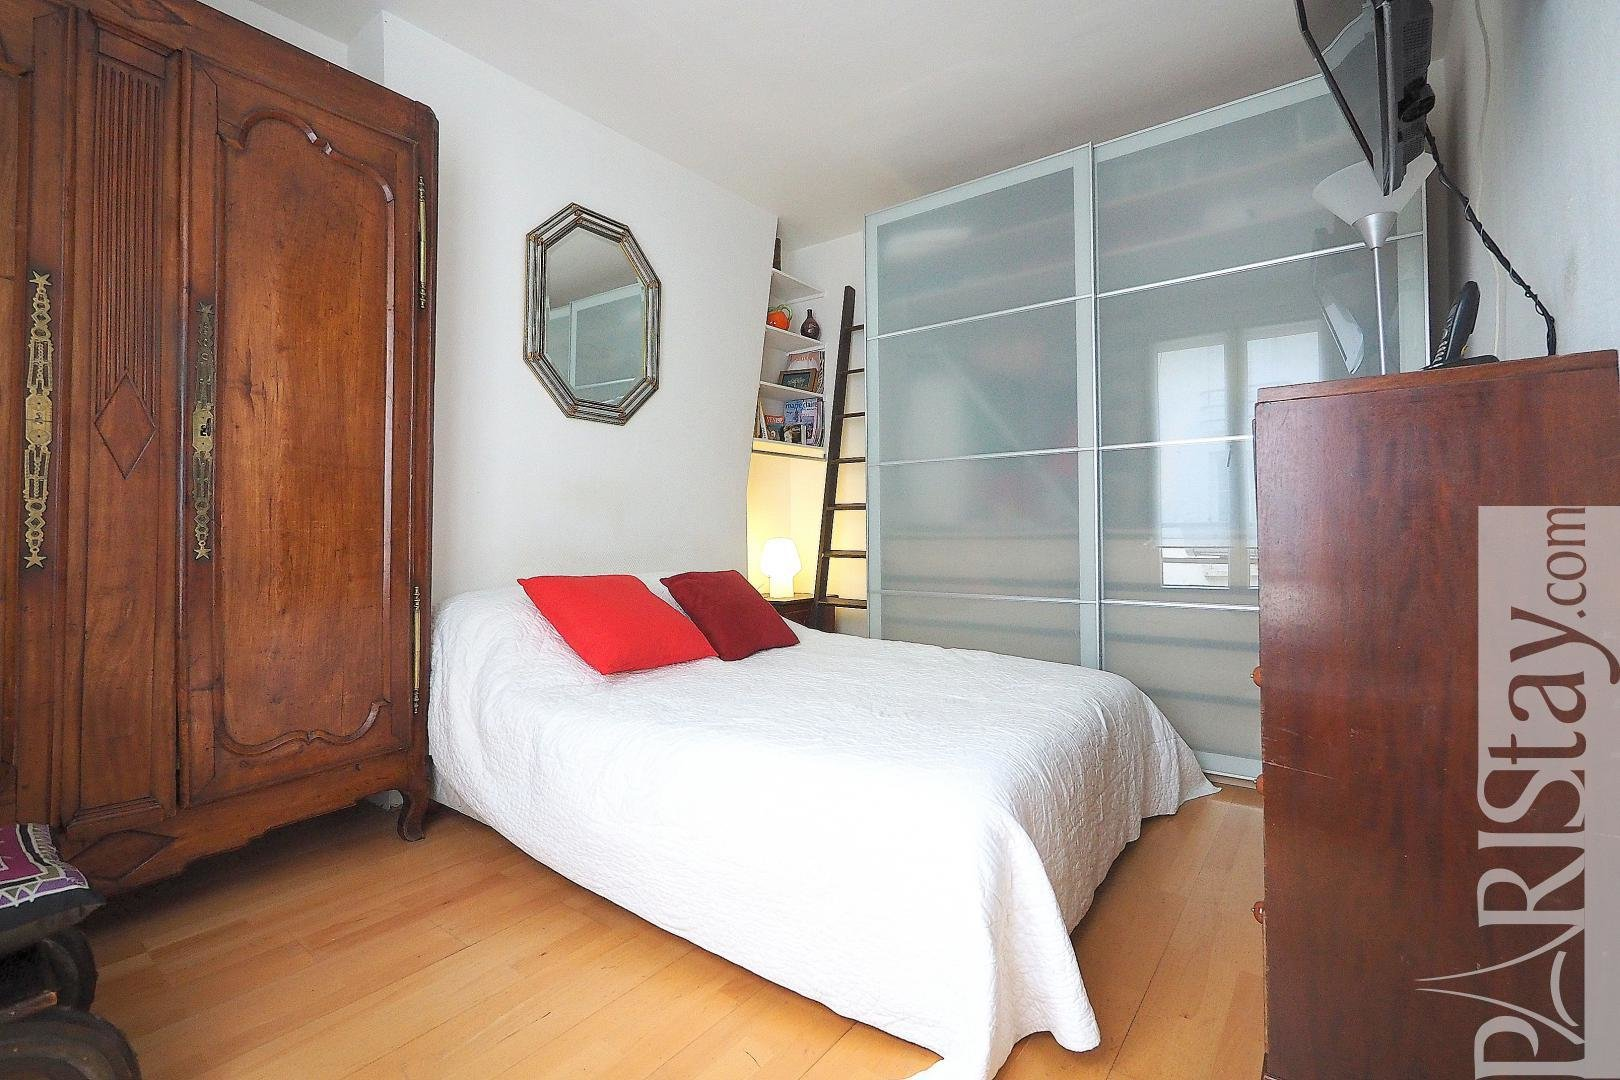 Best Affordable 1 Bedroom Apartment For Rent Parc Monceau 75017 With Pictures